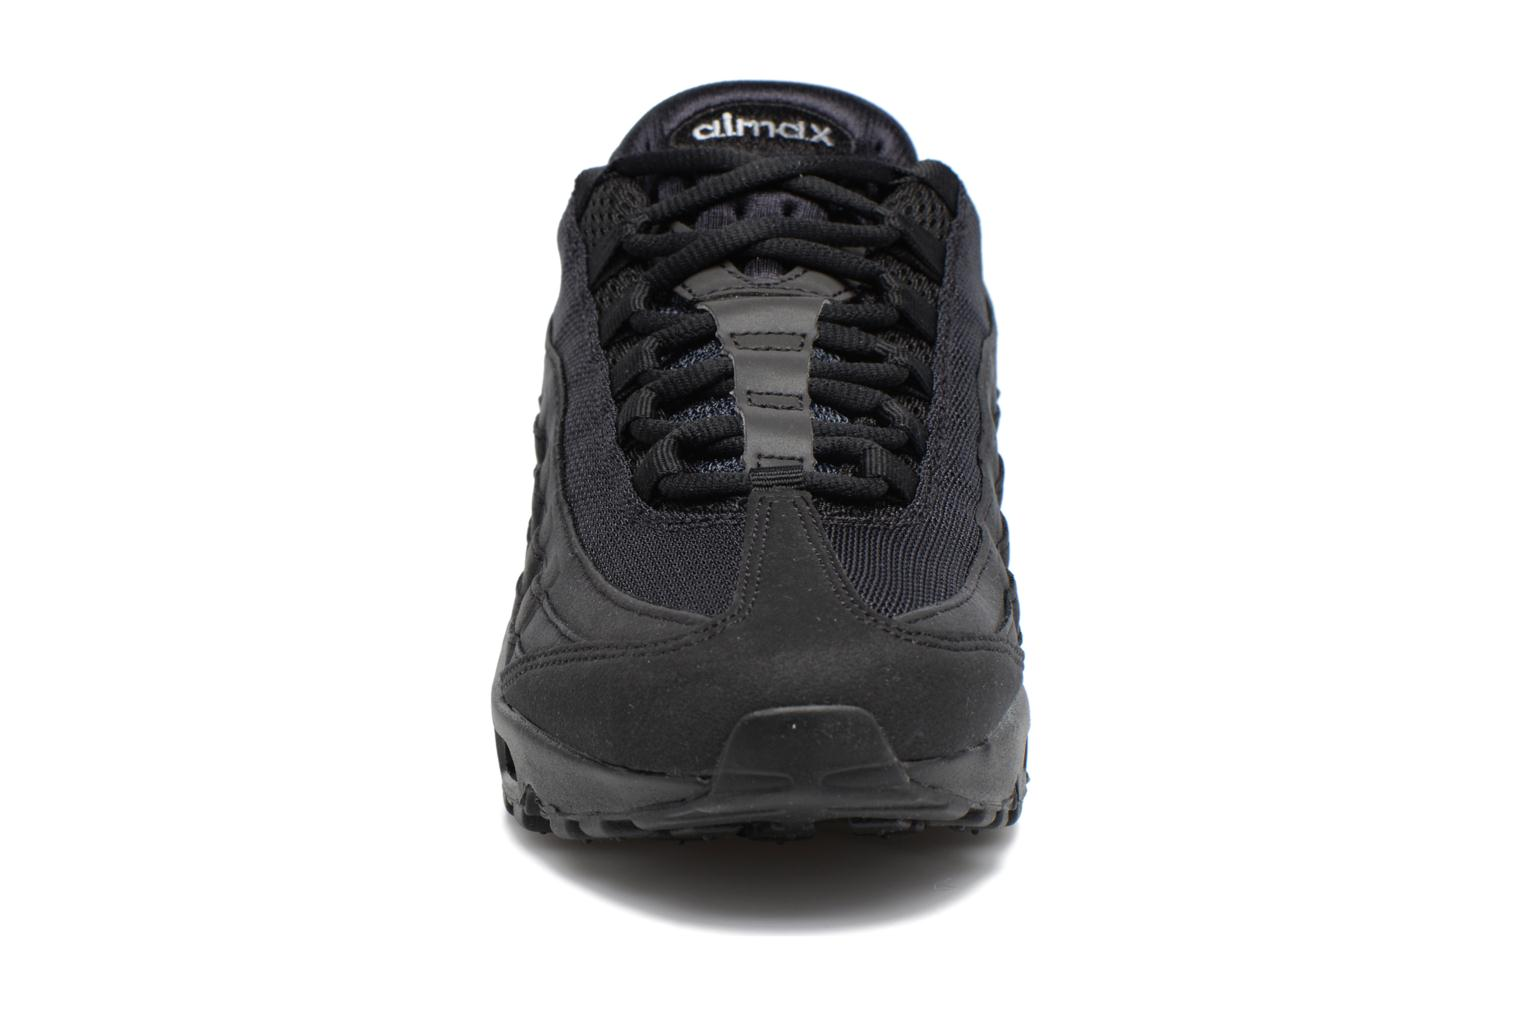 Wmns Air Max 95 Black/Black-Wolf Grey-Dark Grey